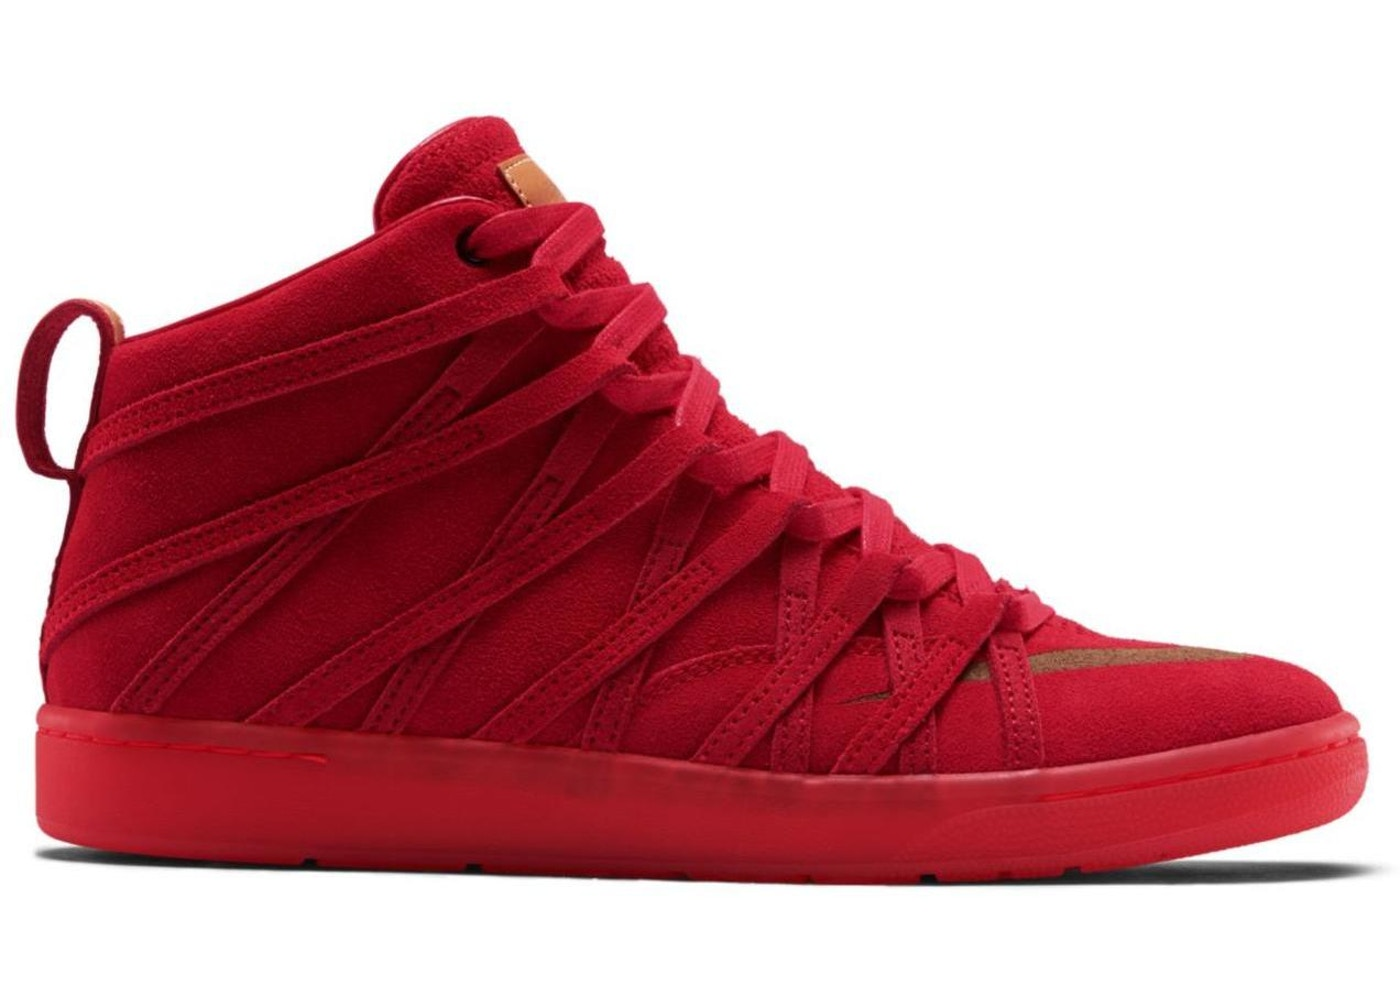 8cf6fdf0405e KD 7 NSW Challenge Red - 653871-600